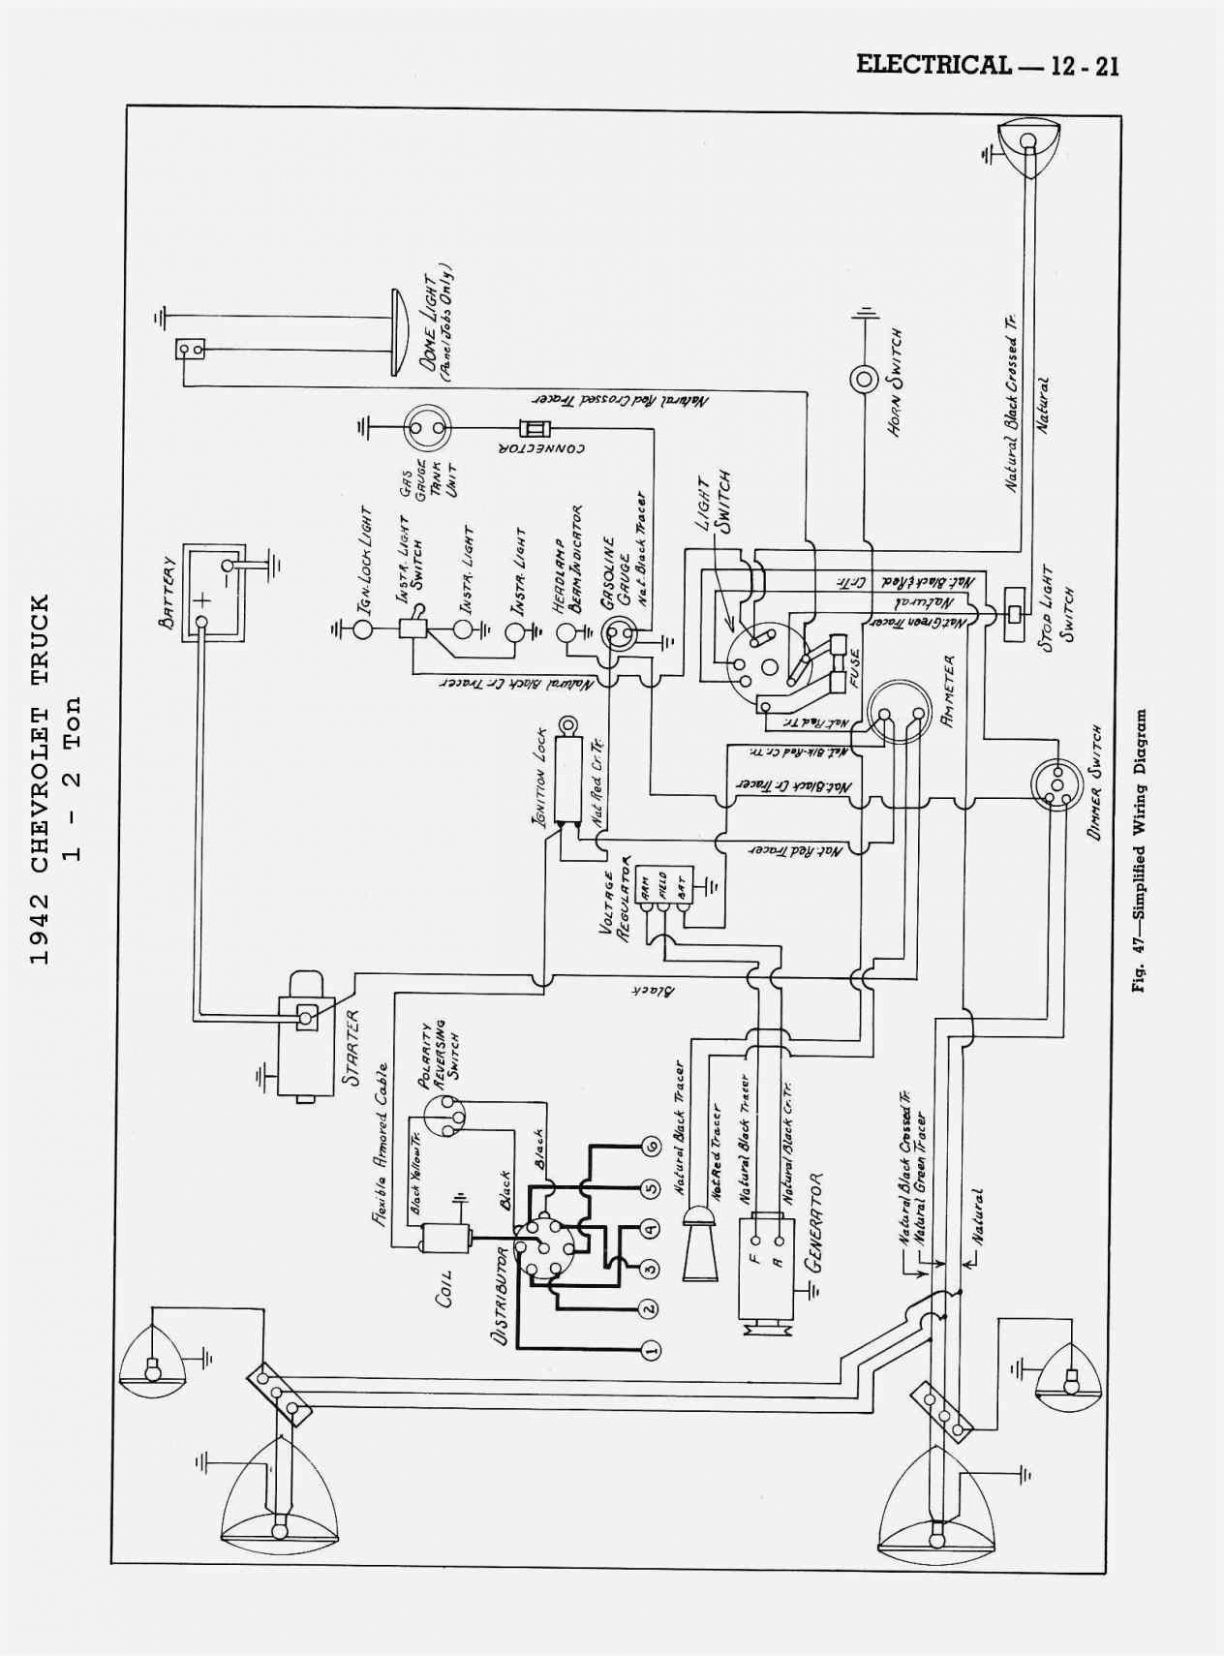 Electrical Wiring Layout